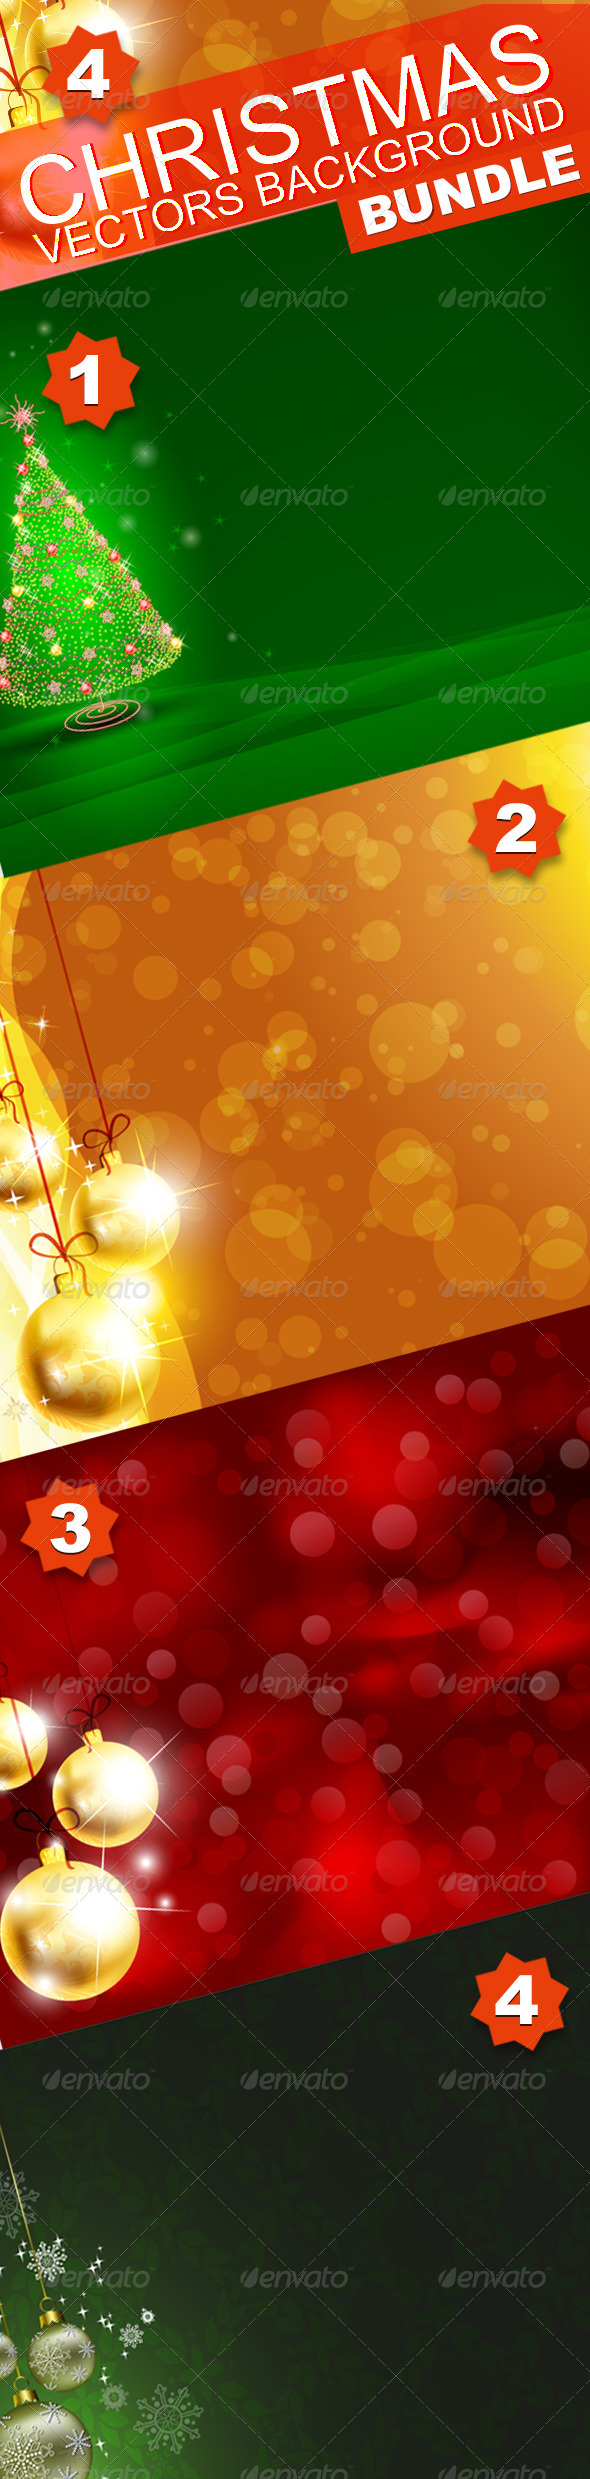 Christmas background Bundle - Christmas Seasons/Holidays